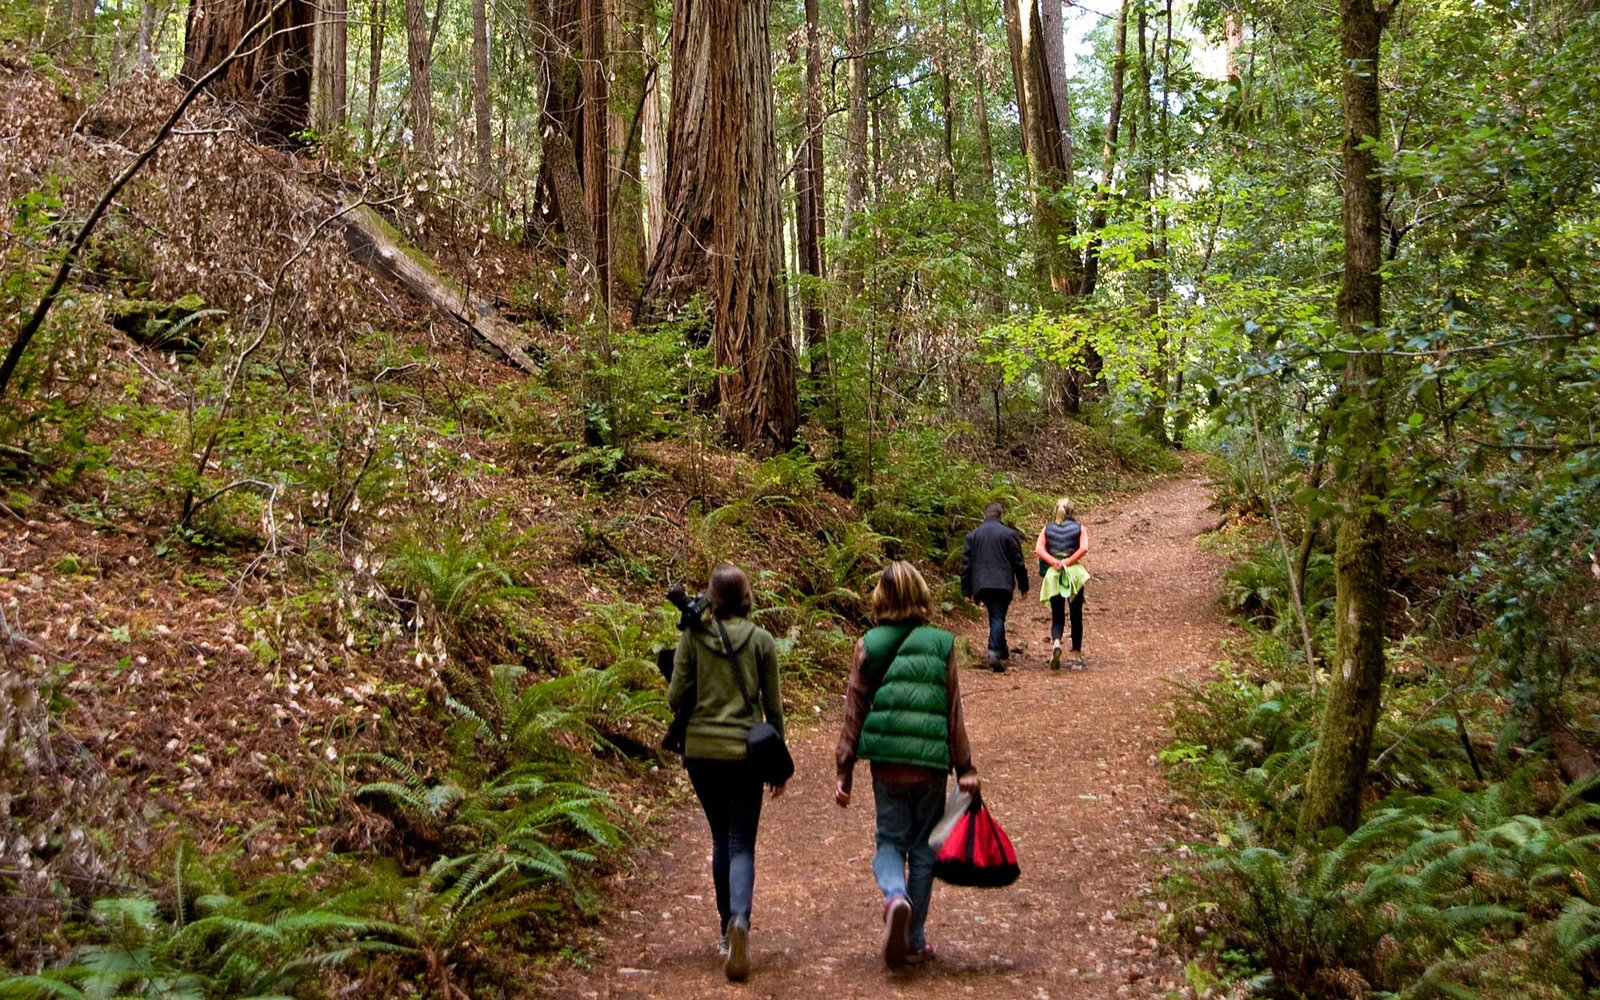 DRDN5R Visitors to redwood tree forest in Mendocino County, California